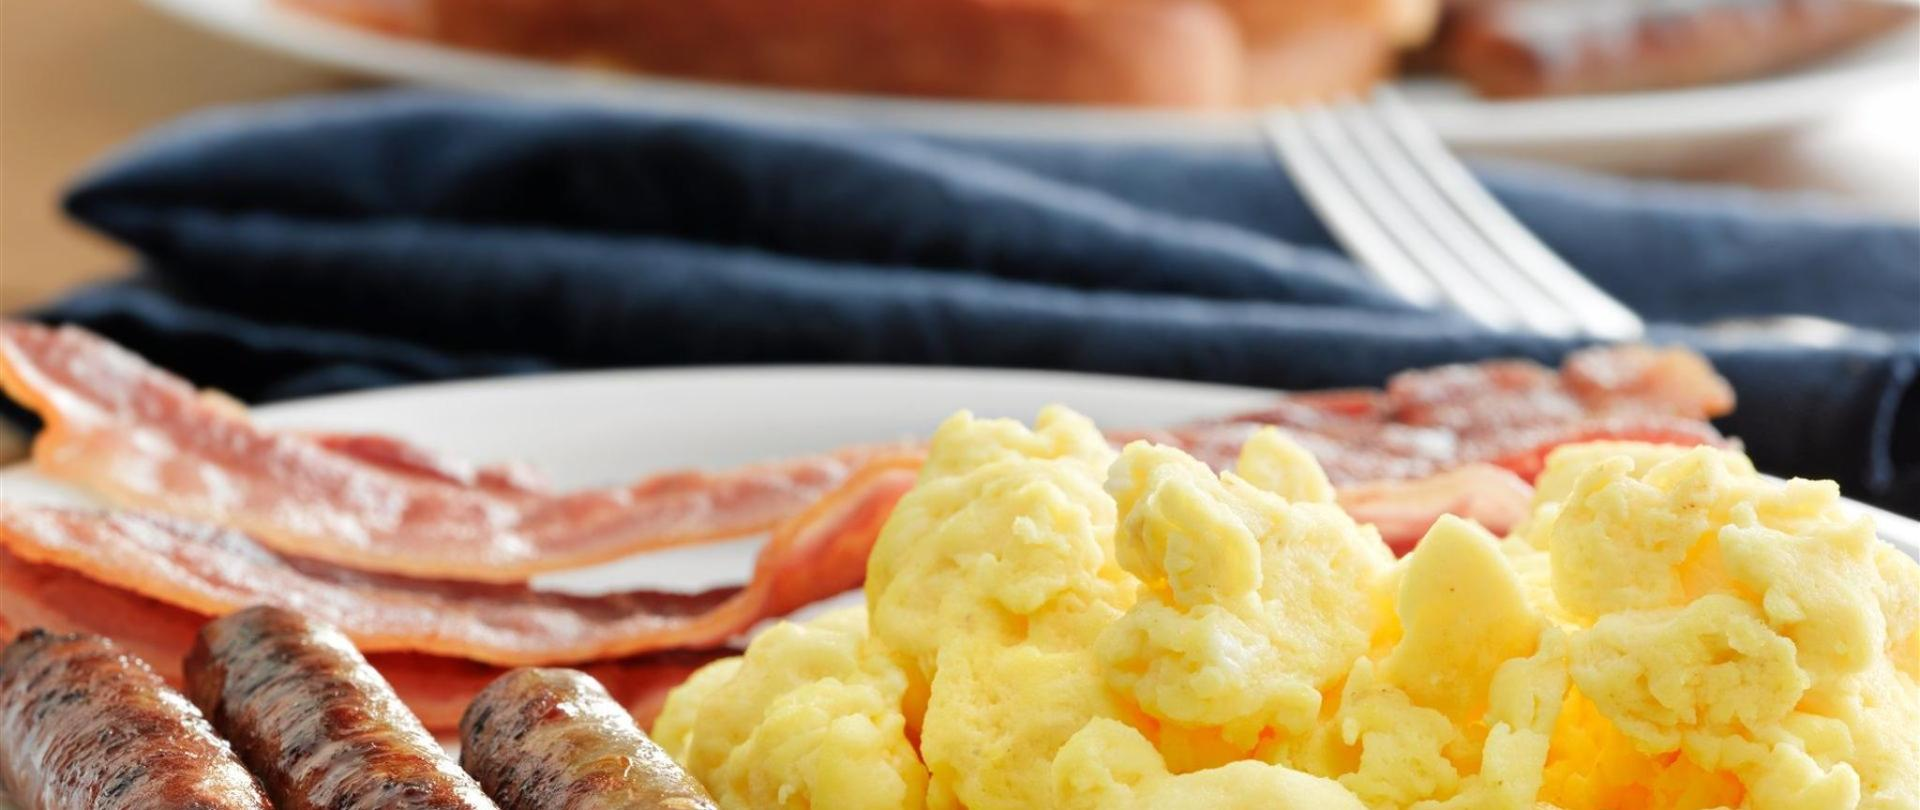 bigstock-breakfast-meal-with-sausage-an-18483449.jpg